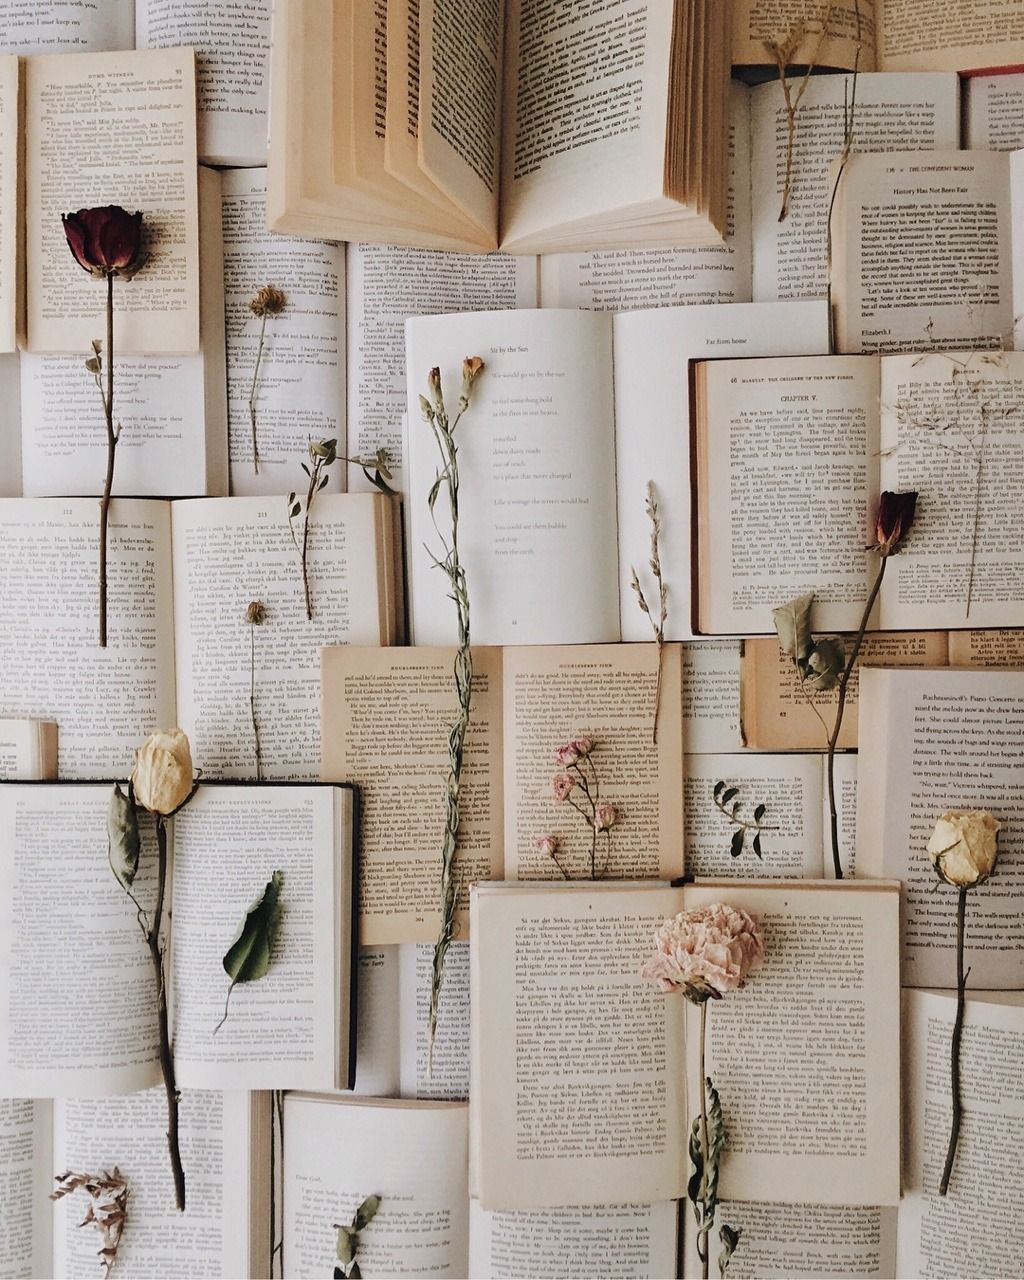 Pin By Lizzie M On Aes Capricorn Moon Book Wallpaper Book Aesthetic Aesthetic Iphone Wallpaper